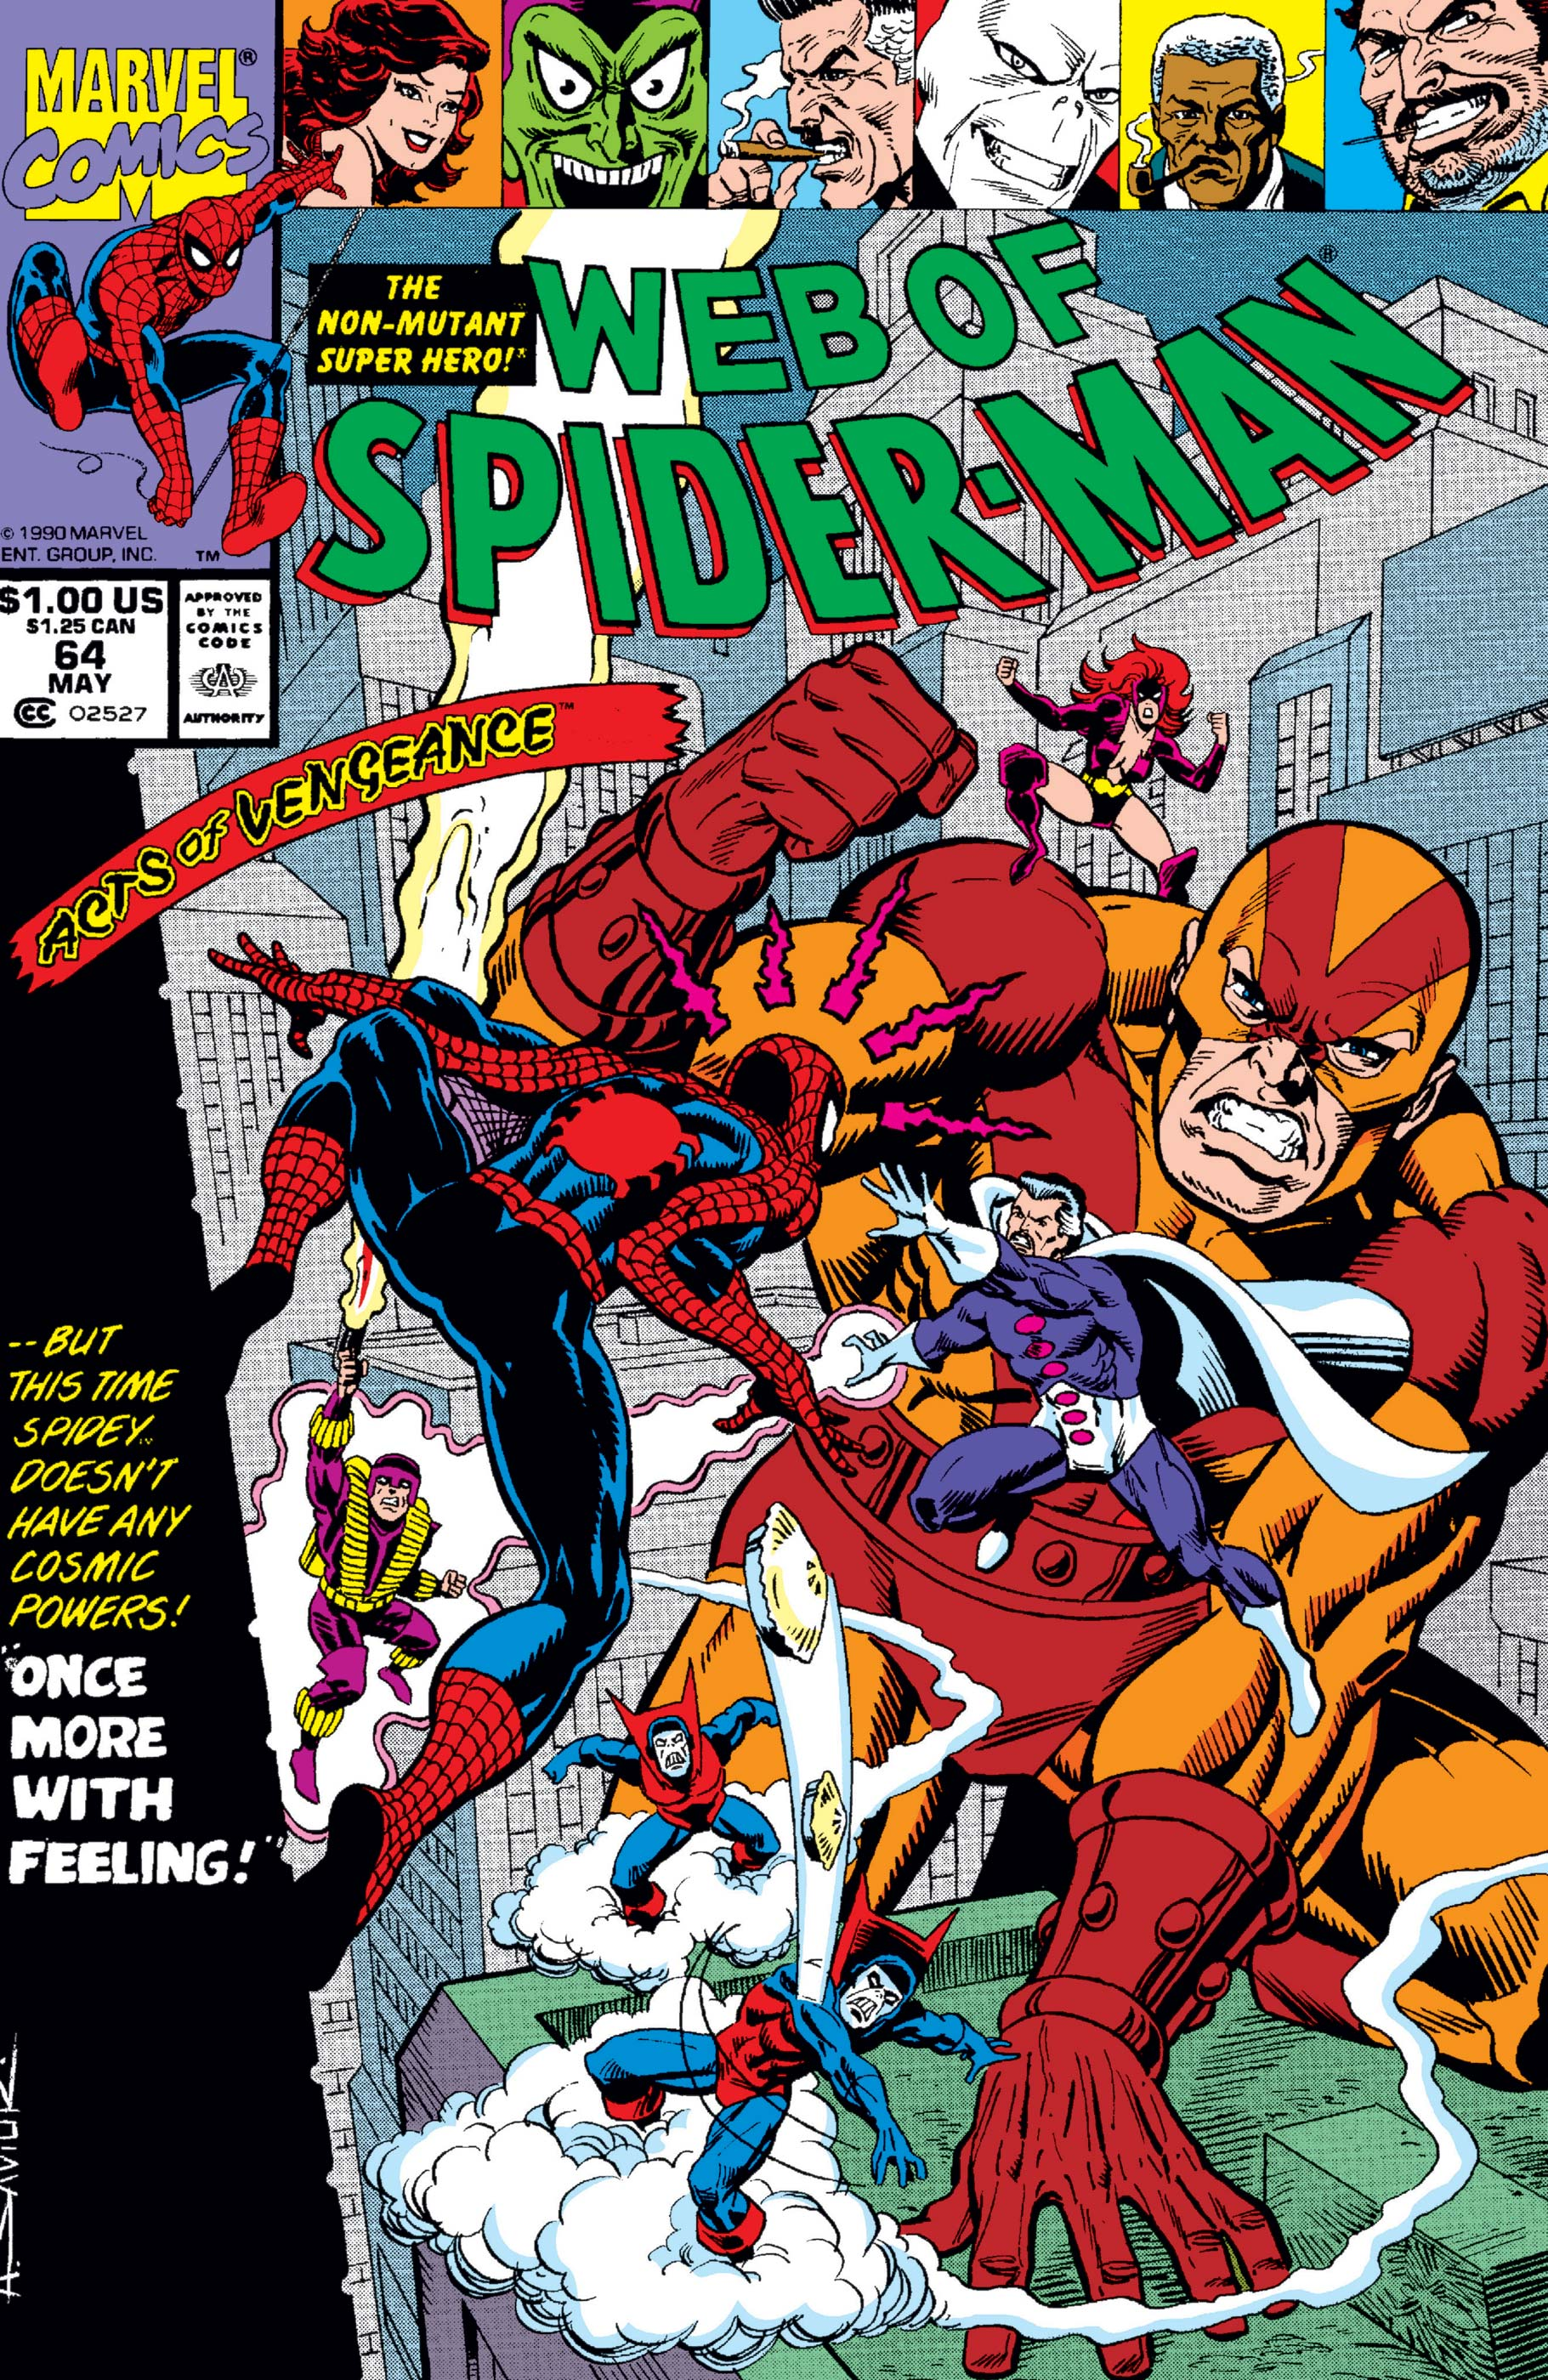 Web of Spider-Man (1985) #64